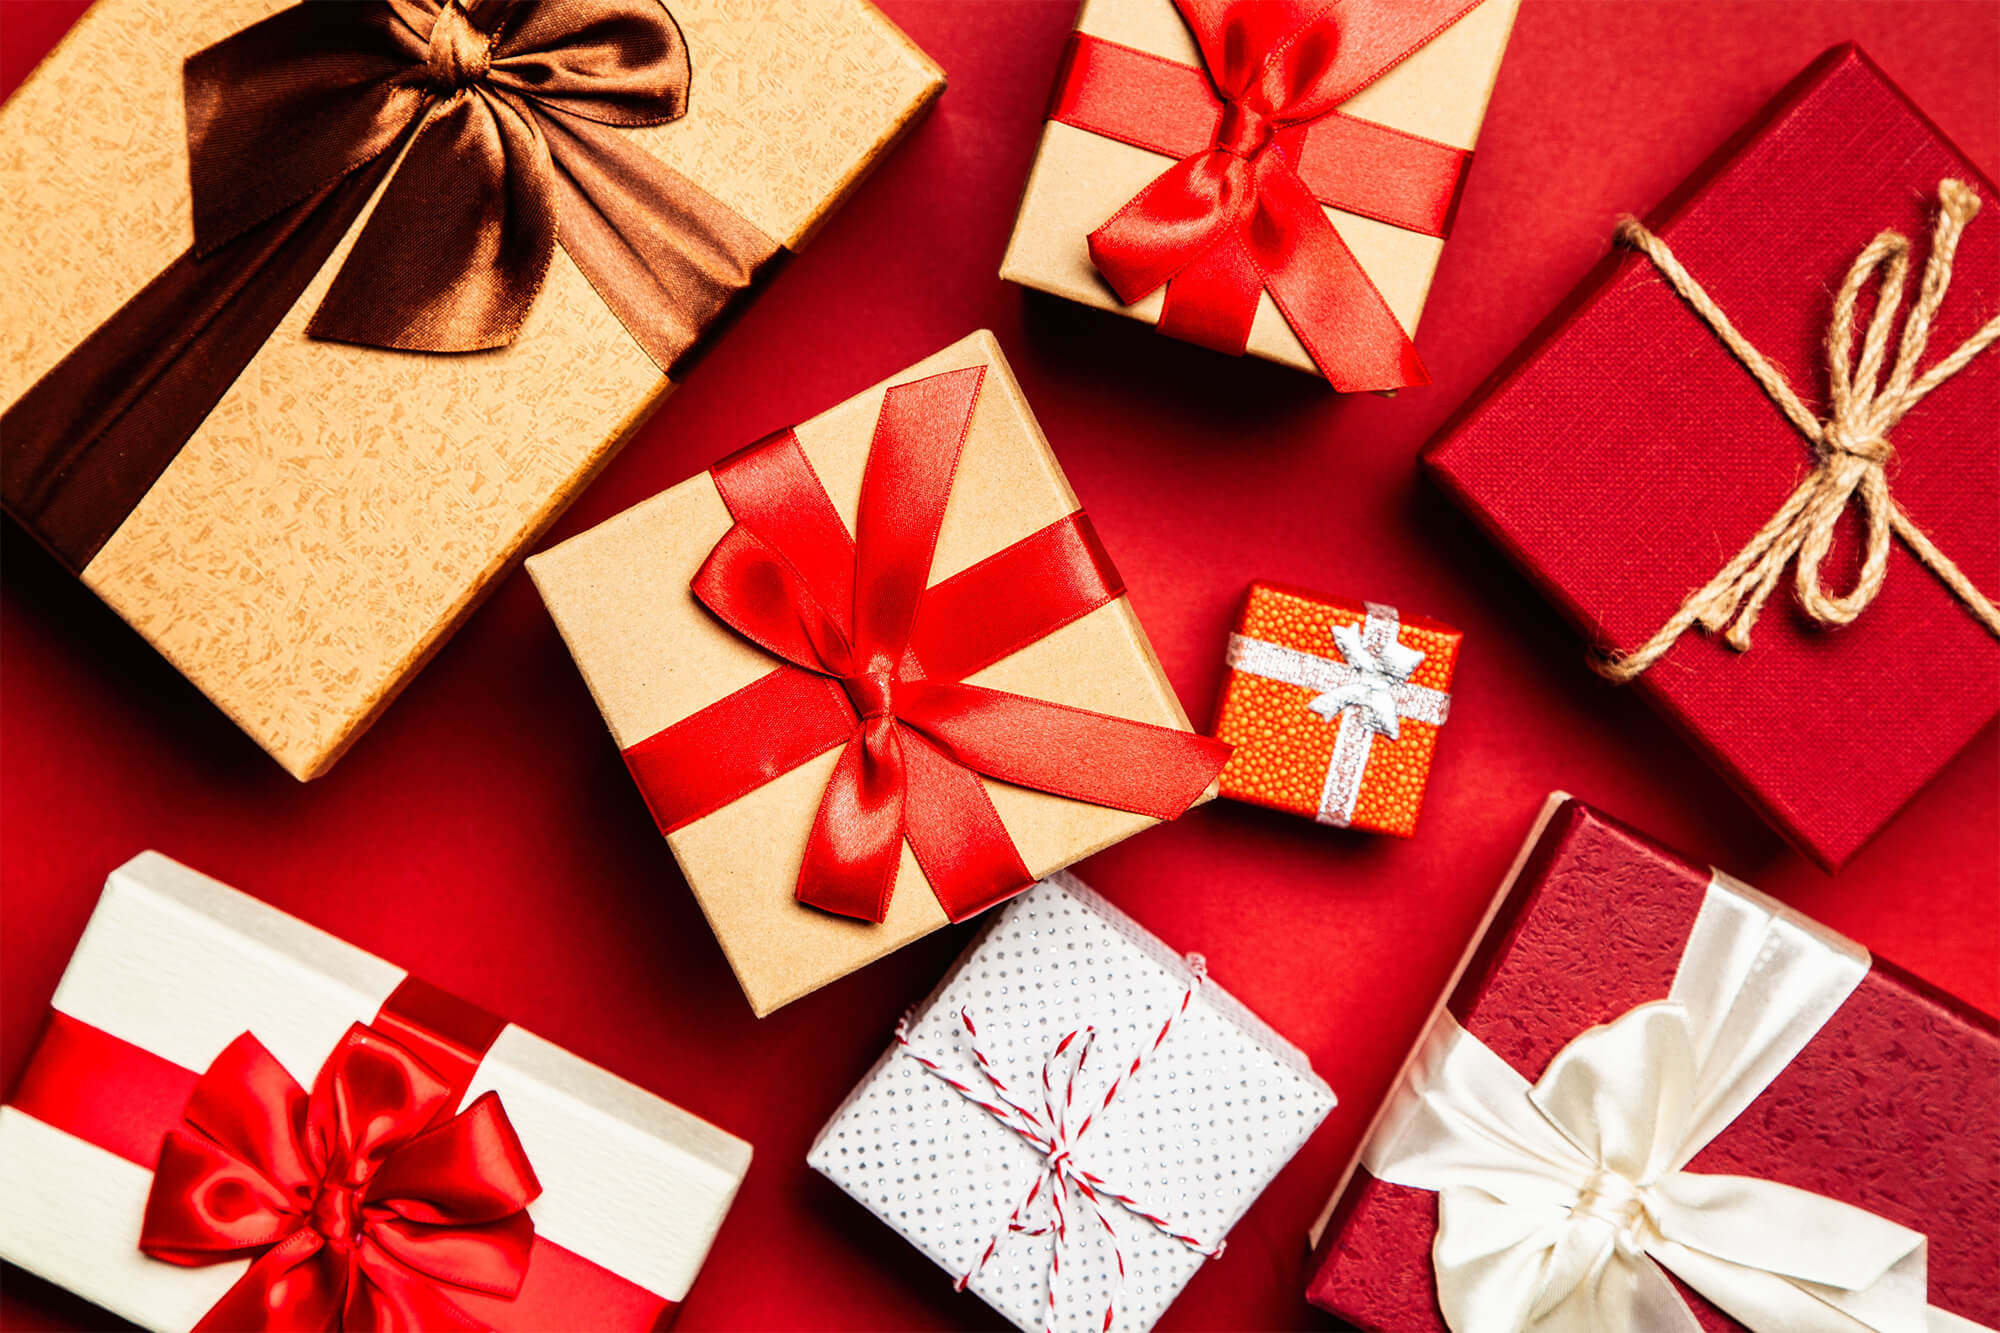 Wrapped presents on a red background